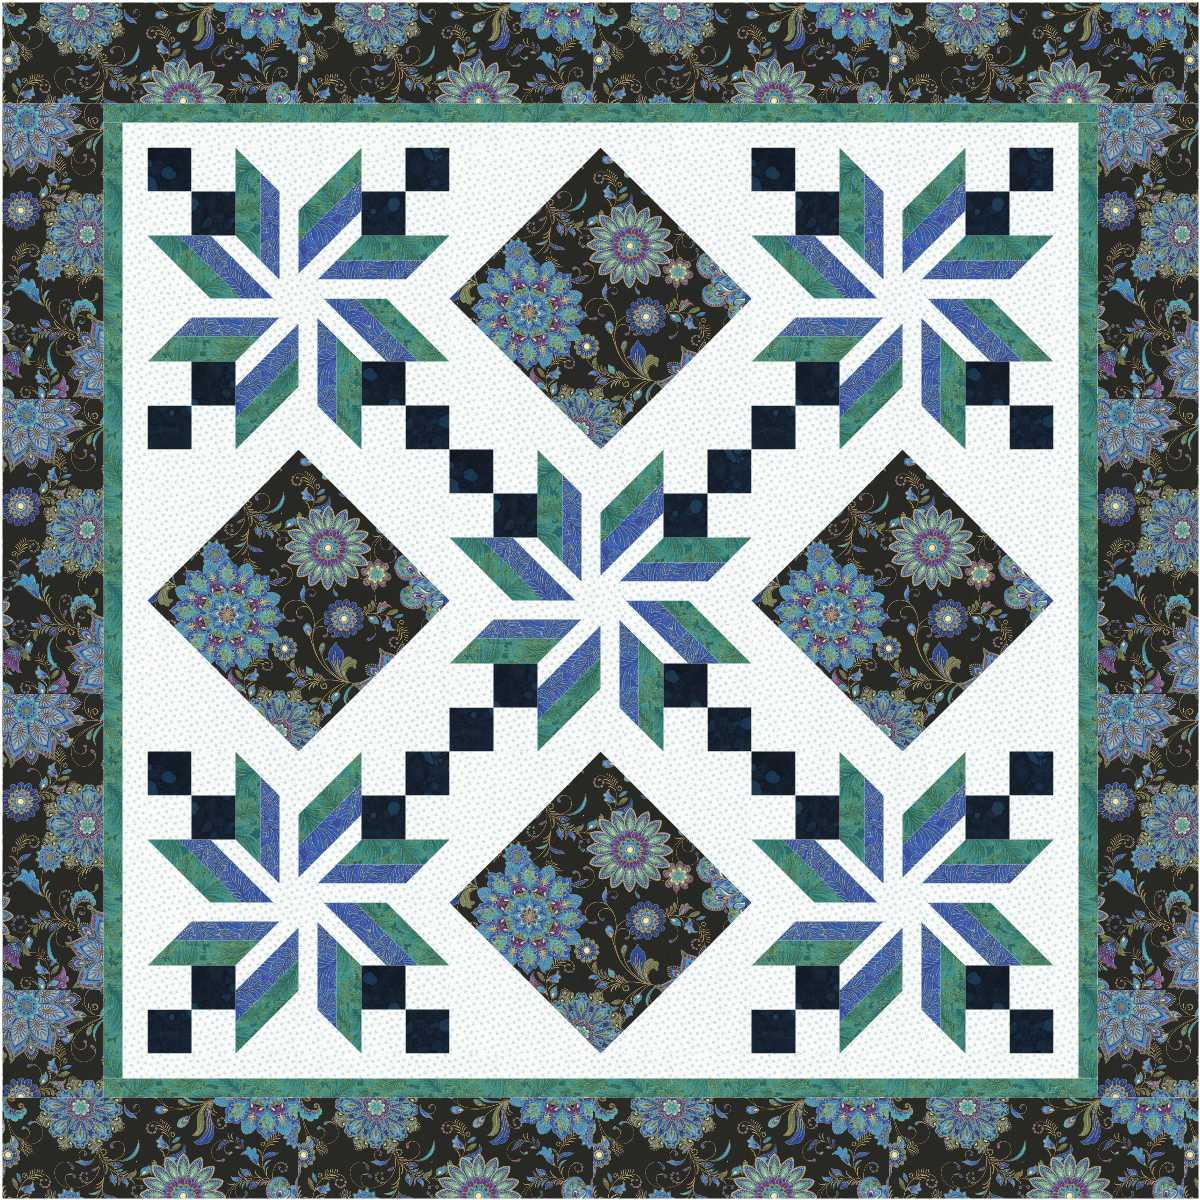 Workshopslectures gateway quilts stuff eden toneelgroepblik Image collections